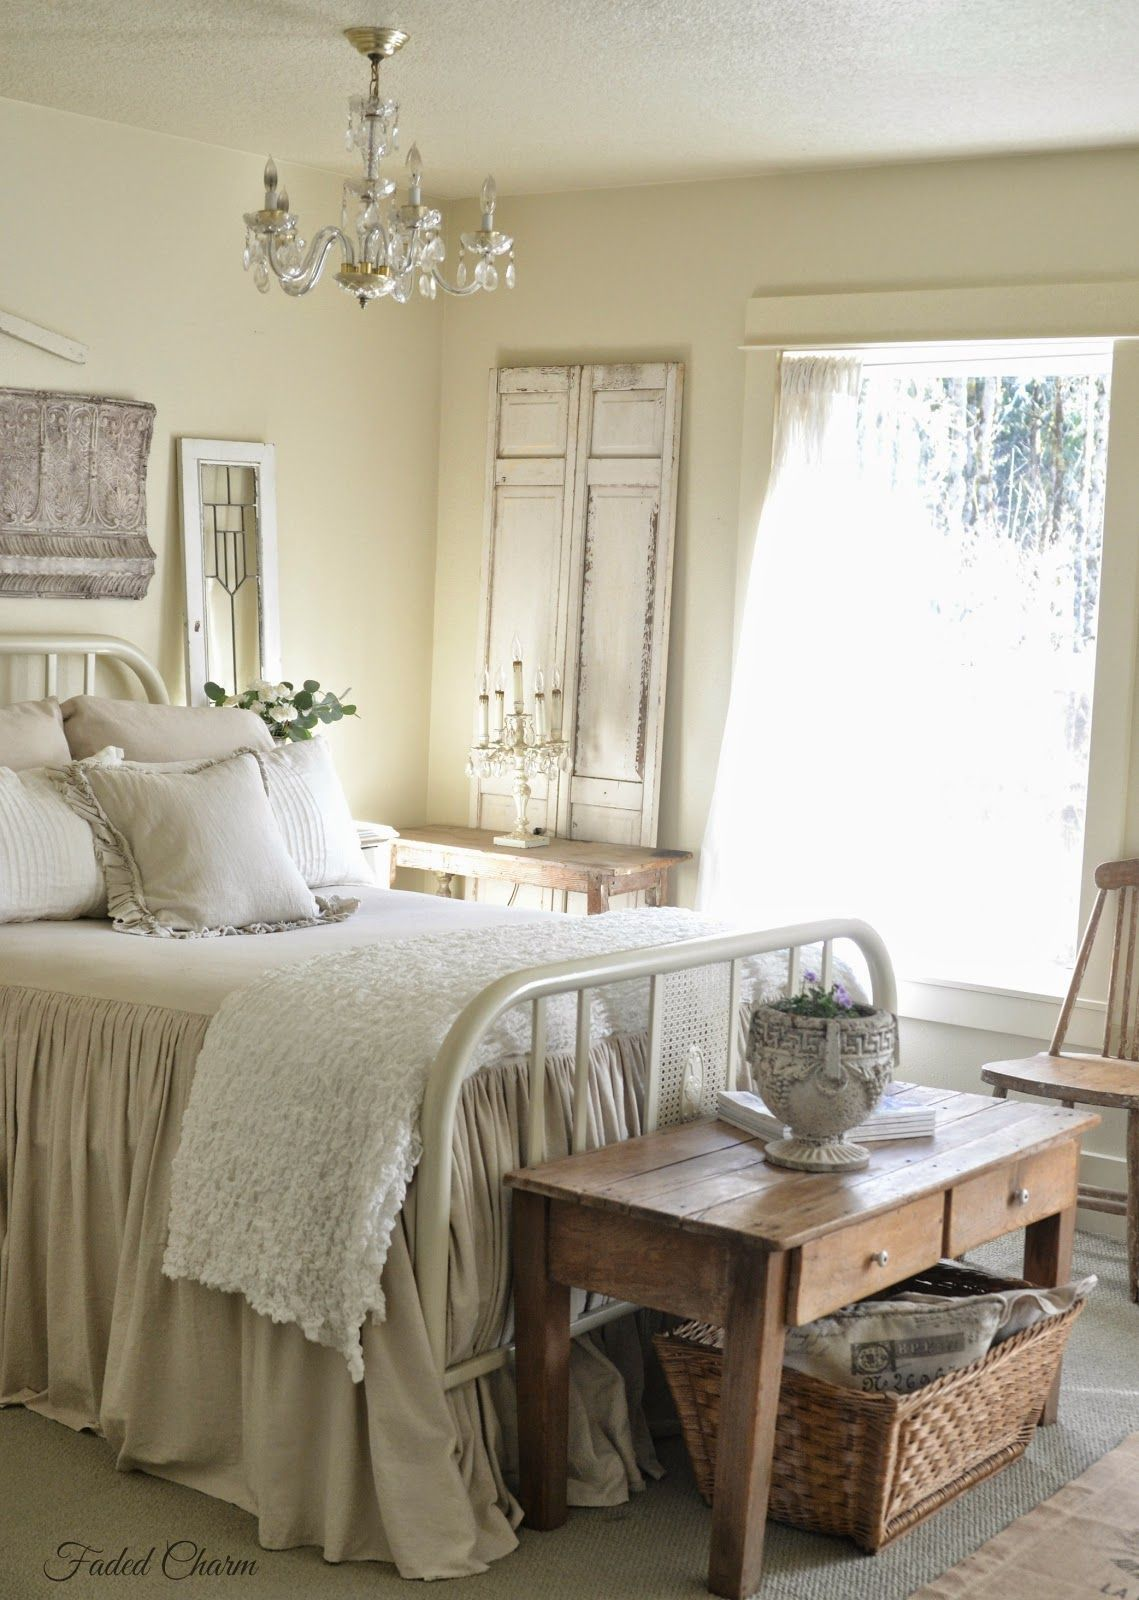 Bon ... Bedroom From Faded Charm Blog Has A Bedspread That Is · Antique Bedroom  DecorCountry ...